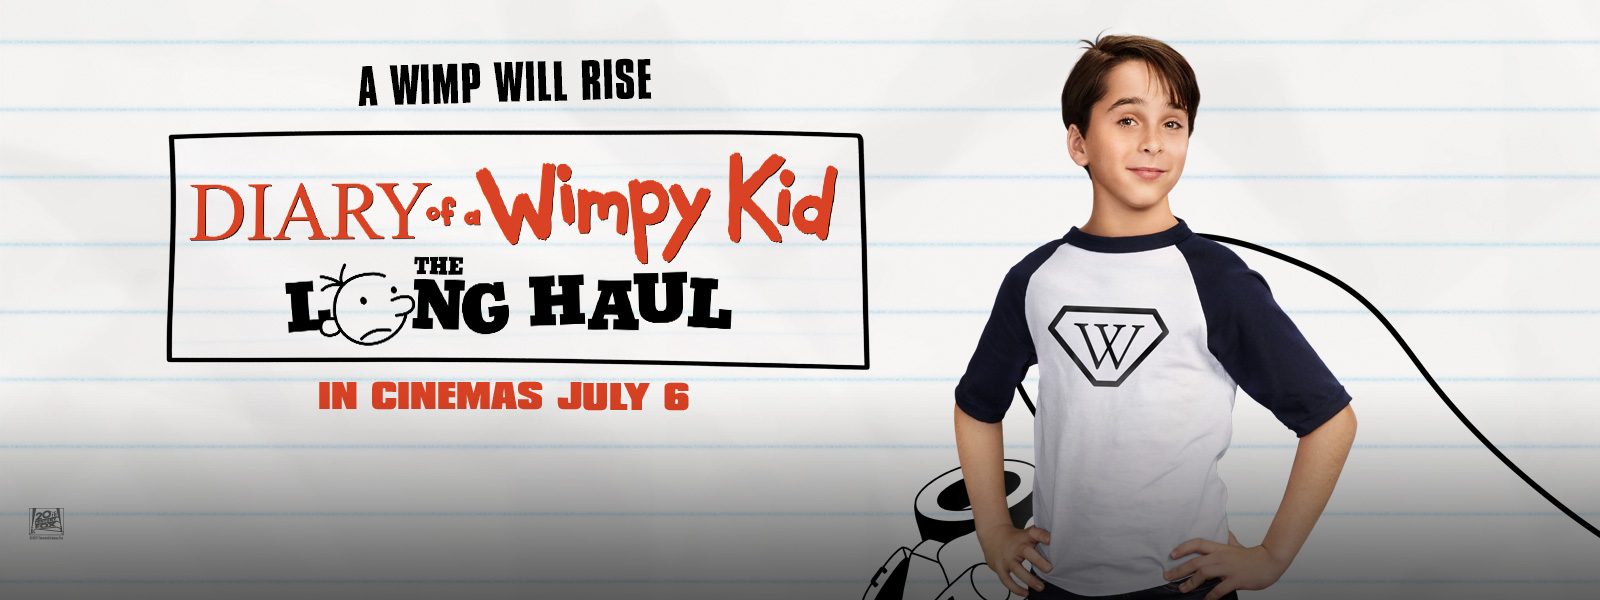 Diary of the Wimpy Kid - The Long Haul